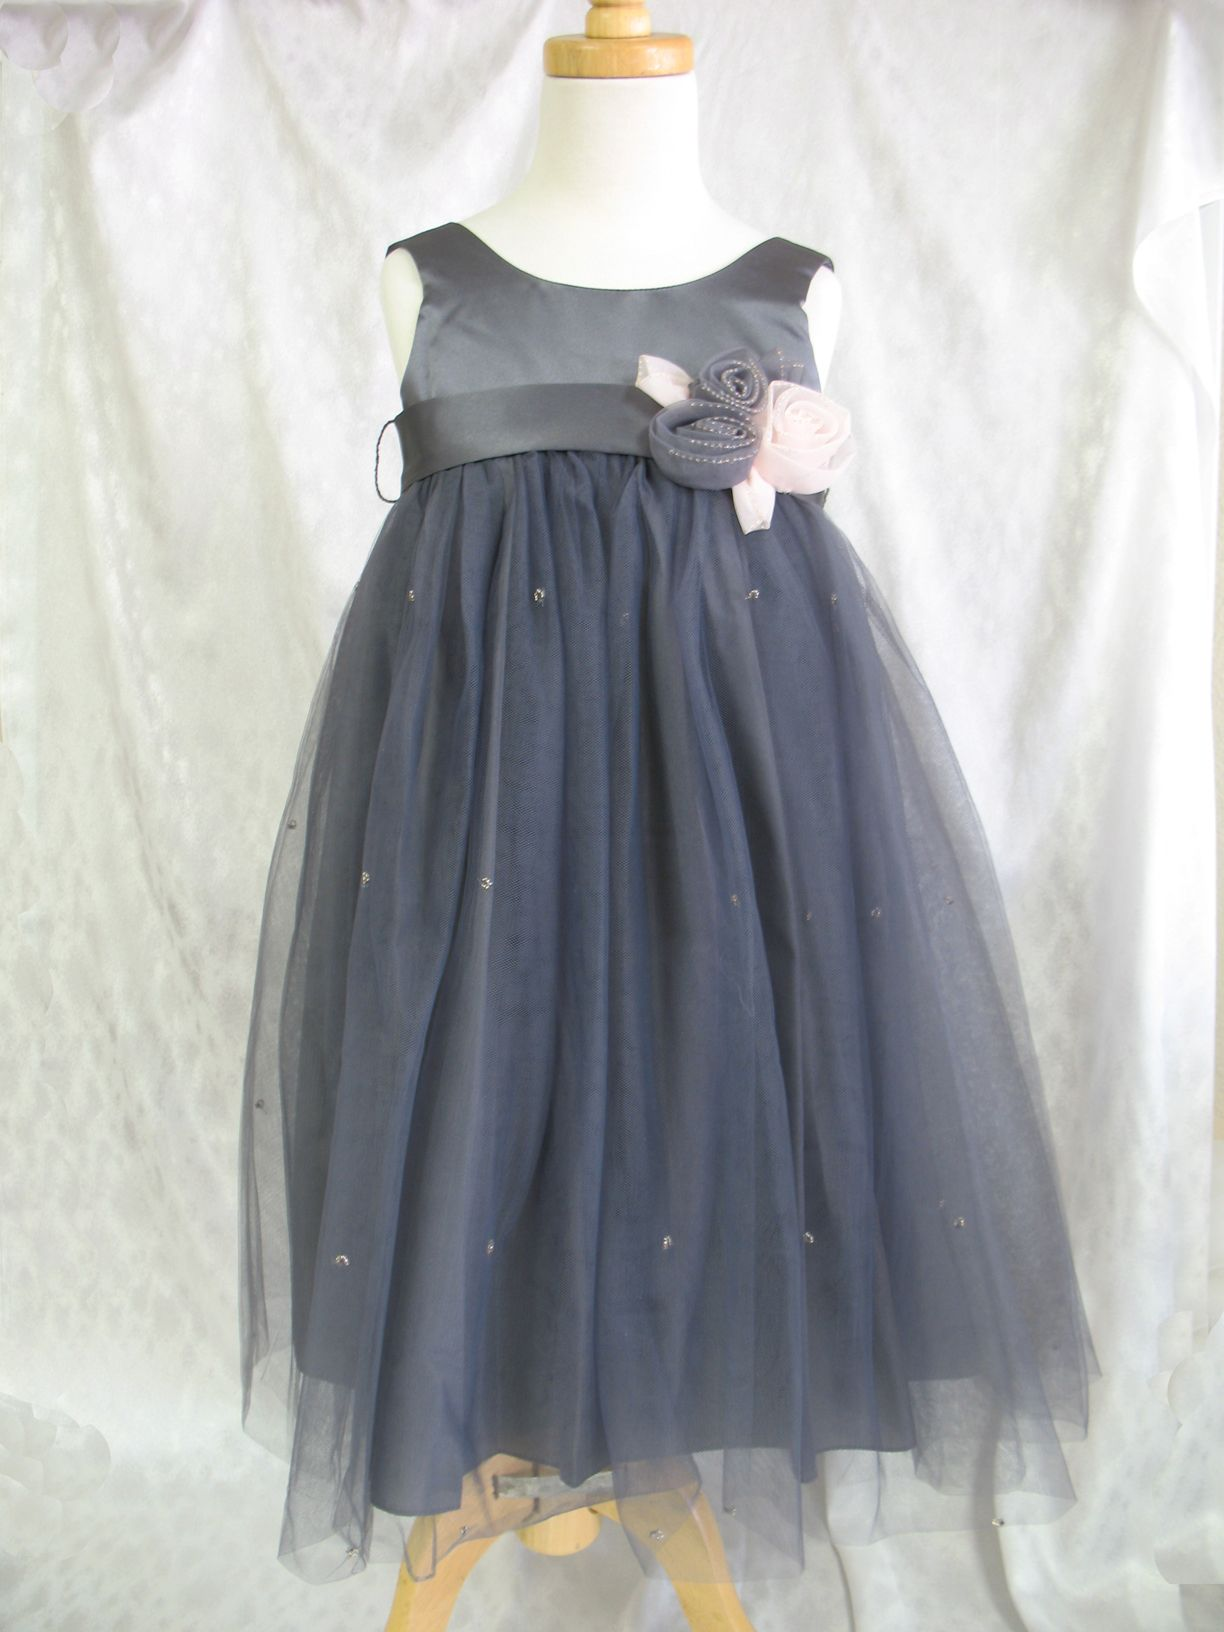 Empire Slate or Charcoal Flower Girl Dress with Beaded Tutu and Flower by US Angels $79.96